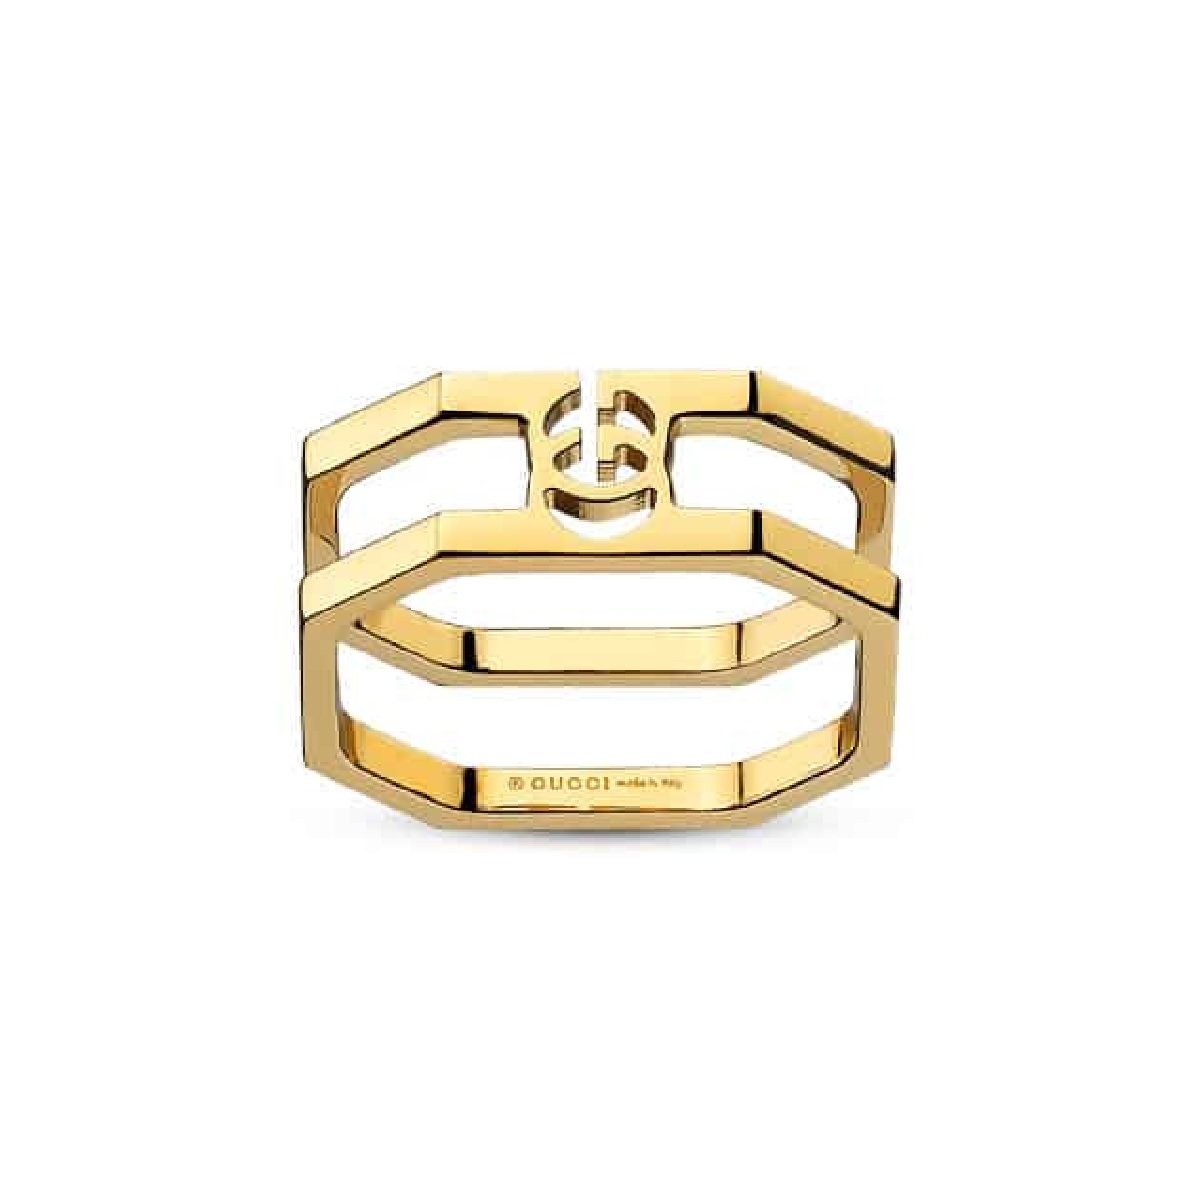 Gucci ring RUNNING G yellow gold size 14 YBC356318001